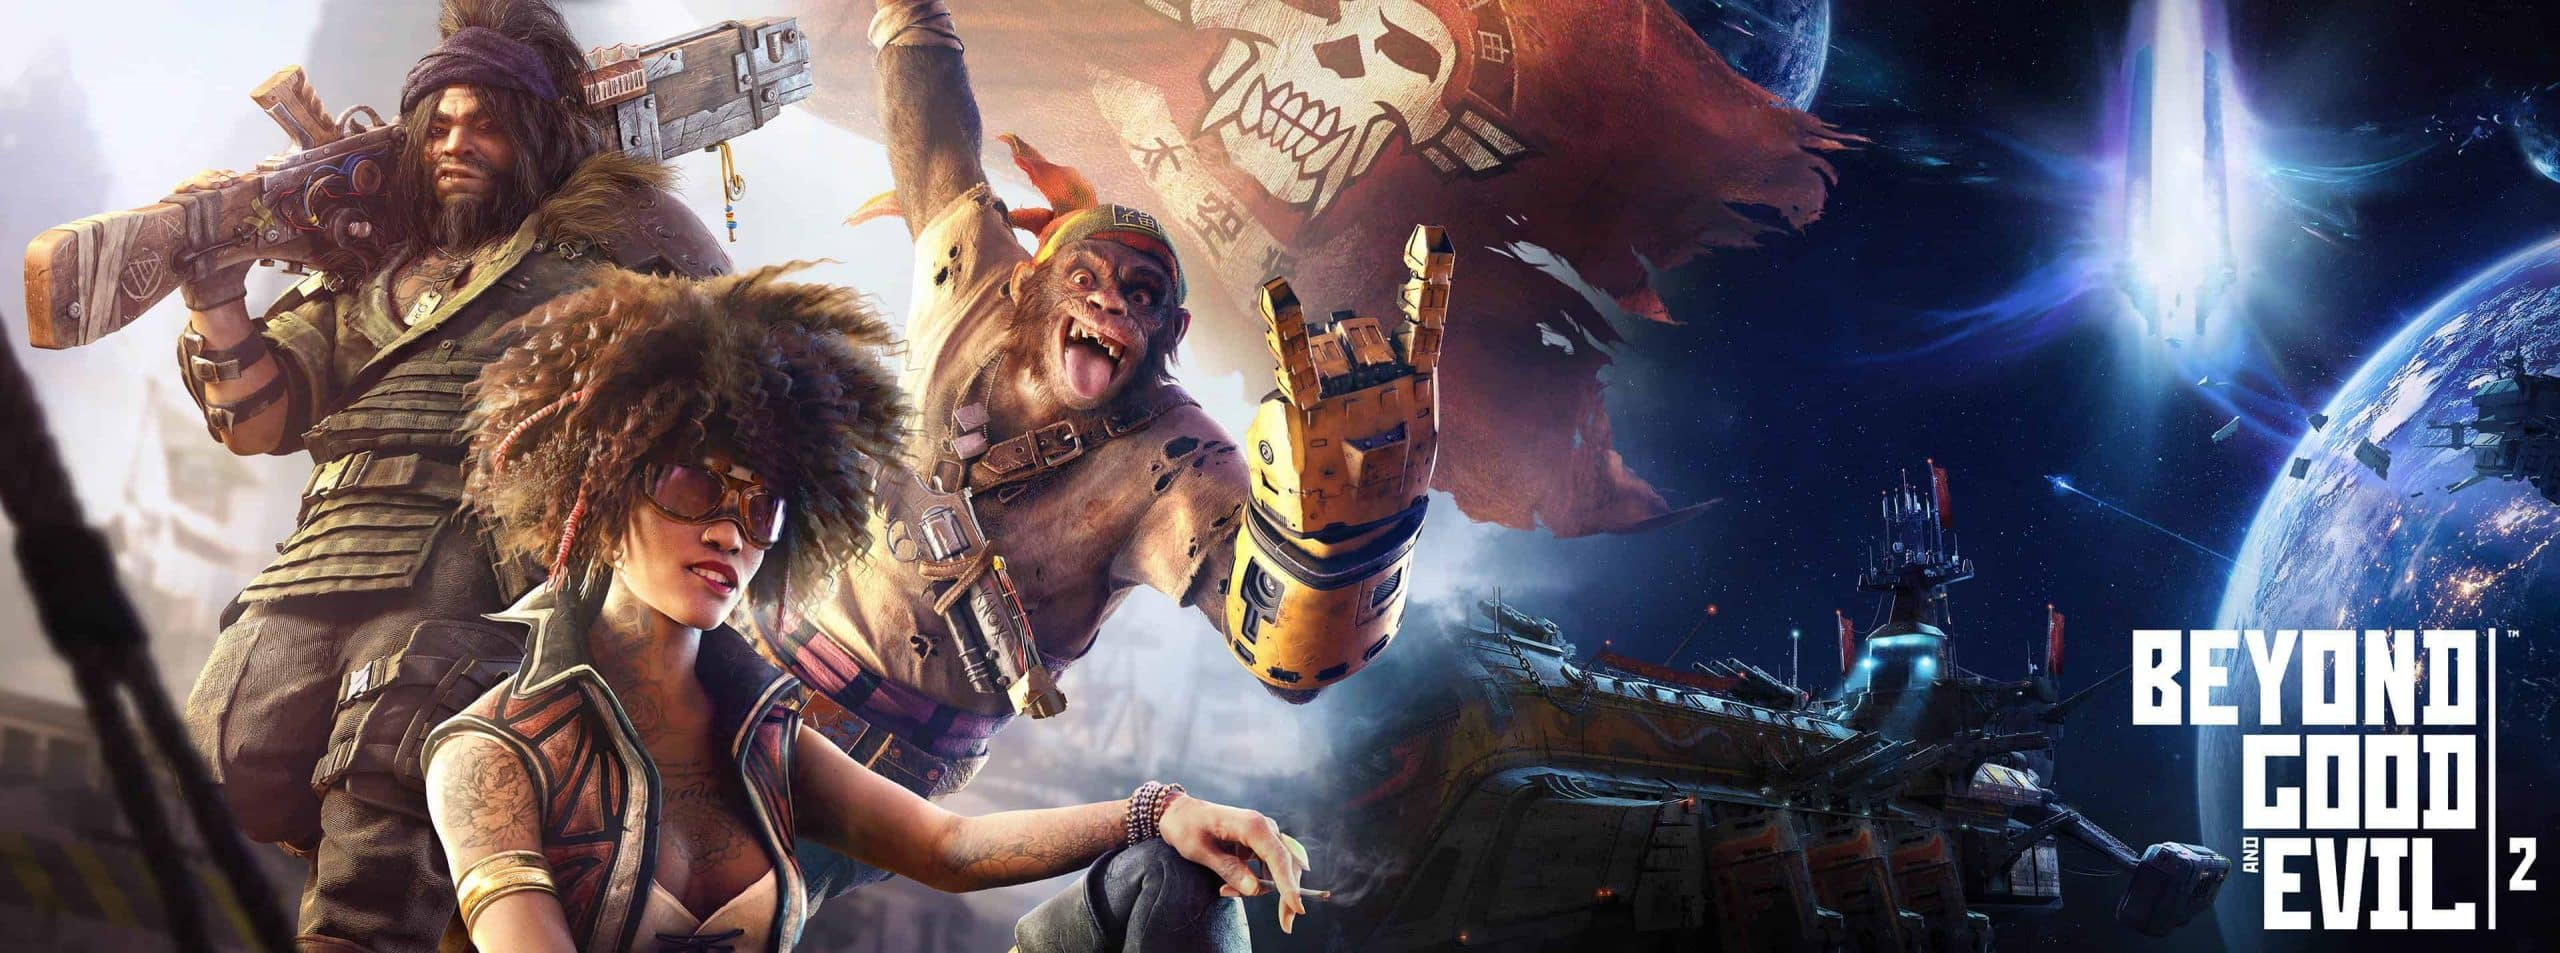 Beyond Good & Evil 2 PC Game Download